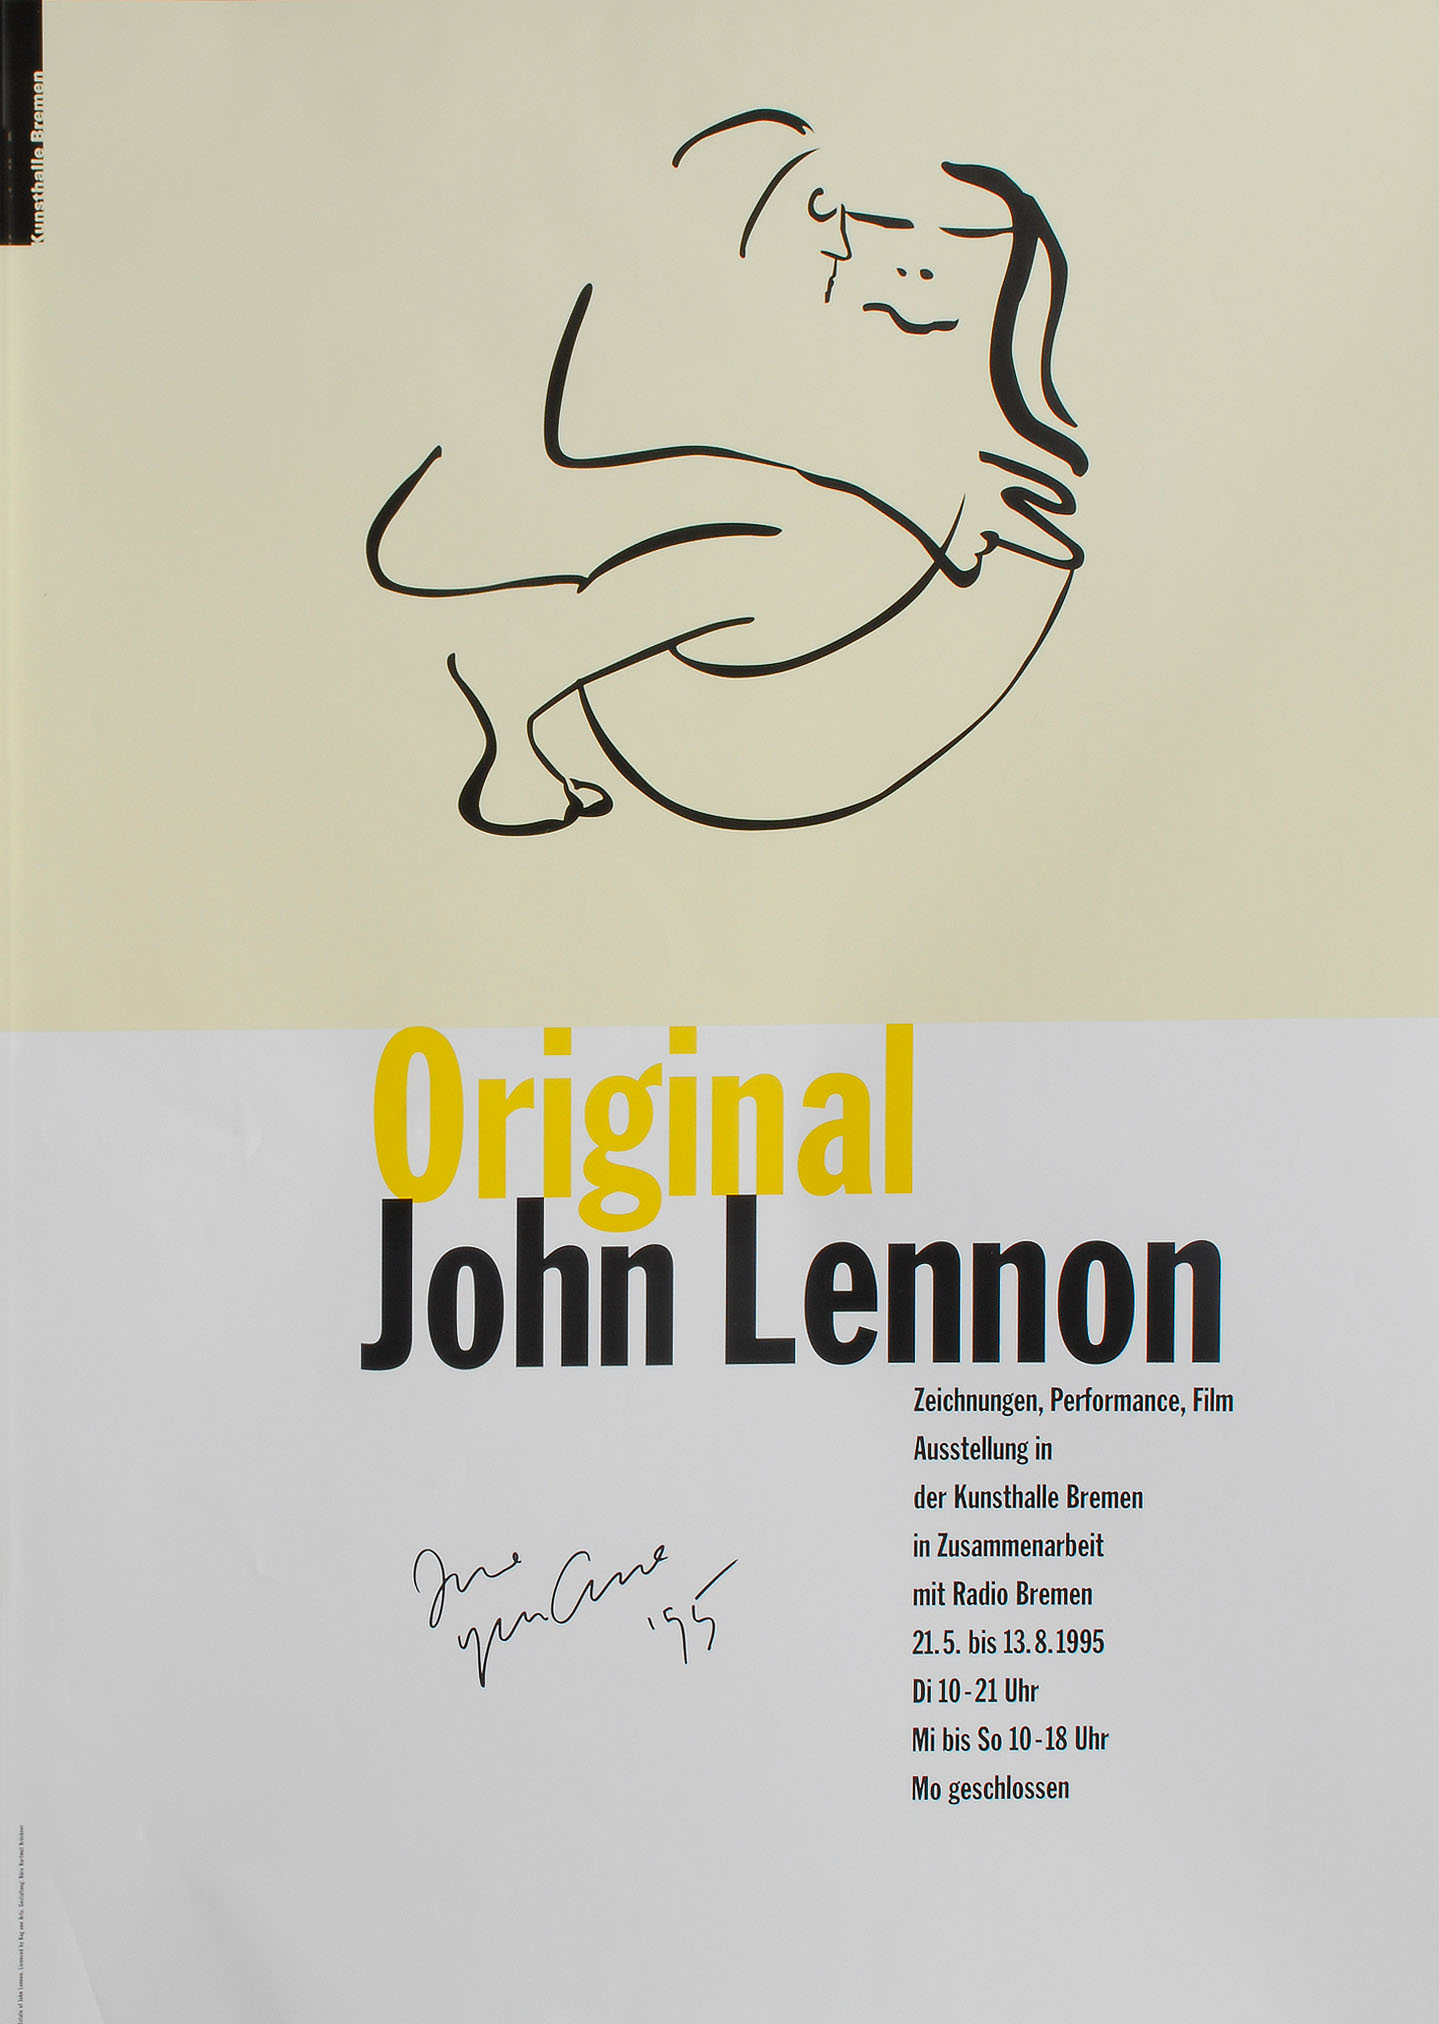 Hand-signed: 'Original John Lennon' in the Kunsthalle Bremen (1995)